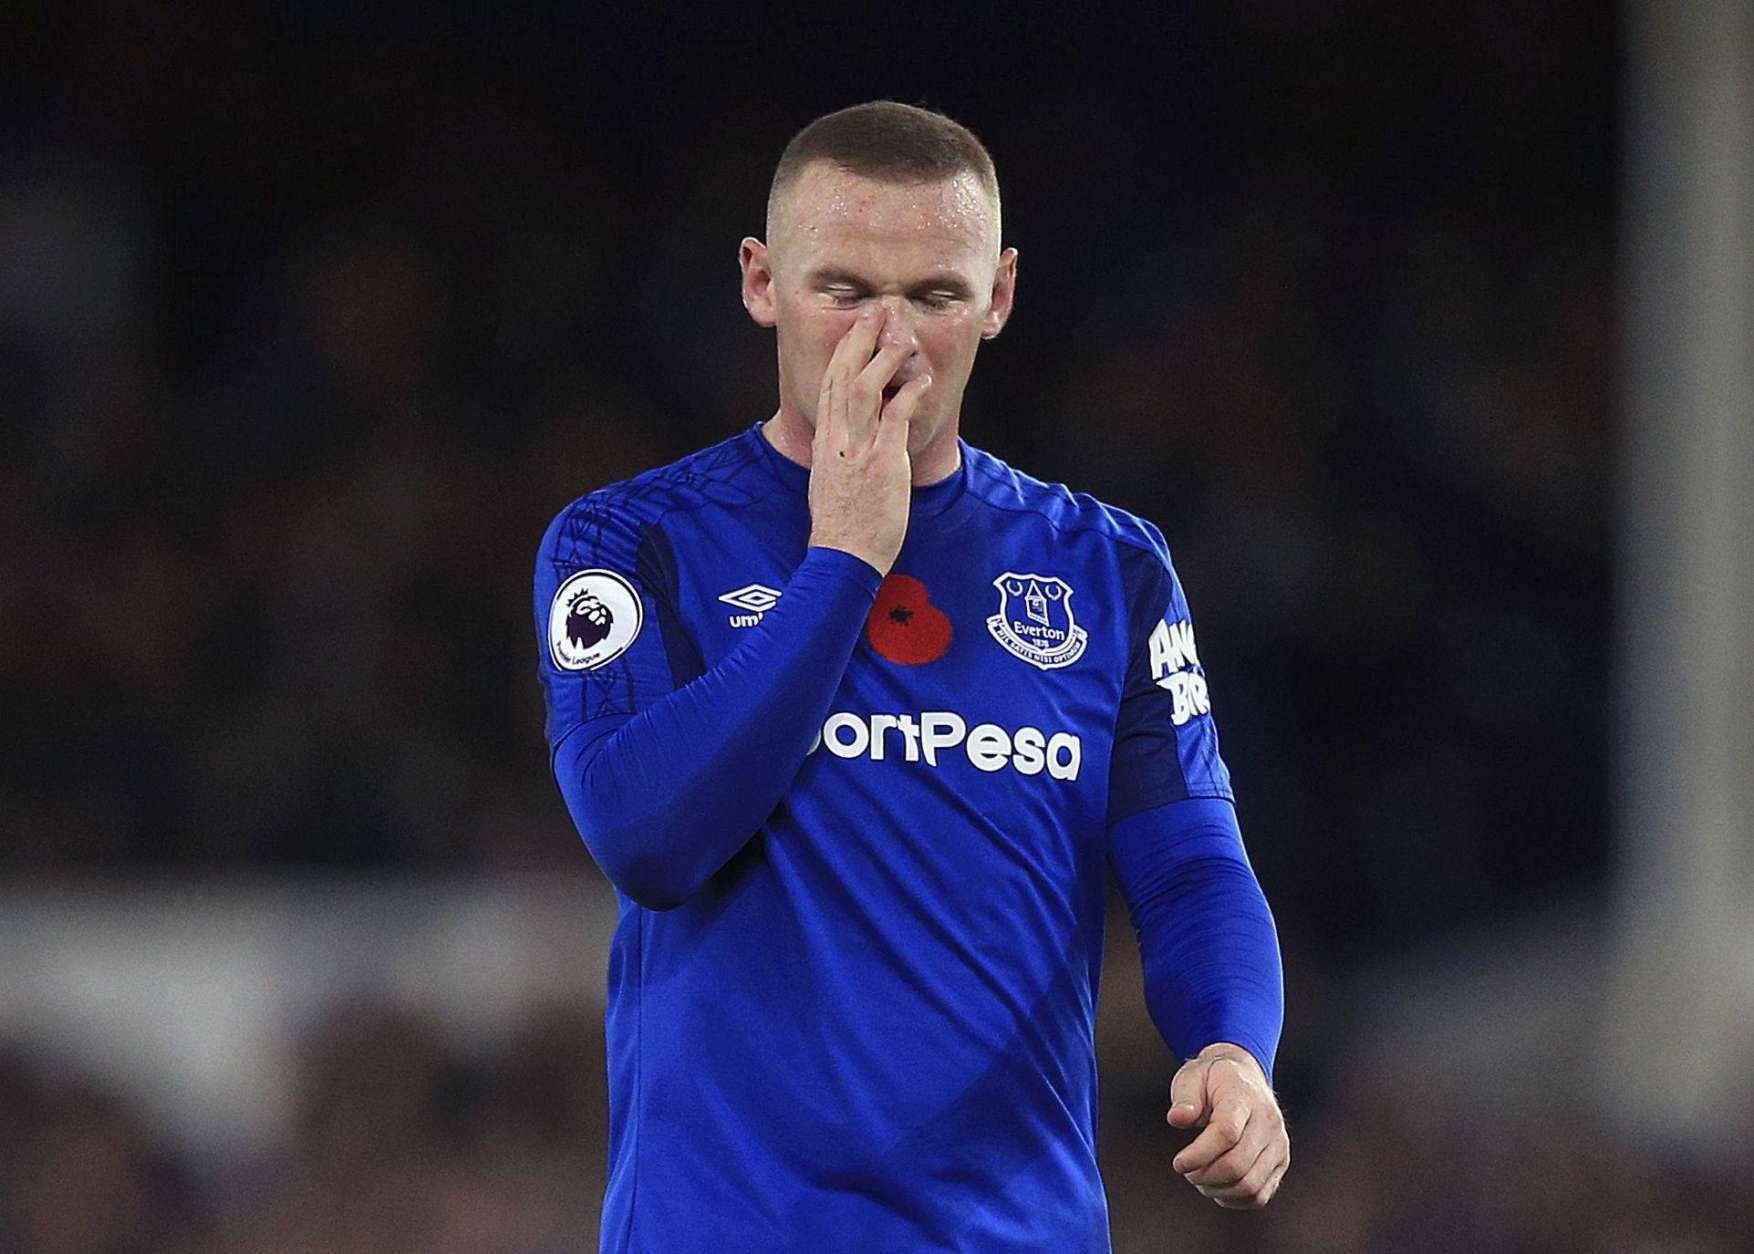 Everton's Wayne Rooney during the English Premier League soccer match against Watford at Goodison Park, Liverpool, England, Sunday Nov. 5, 2017. (Peter Byrne/PA via AP)